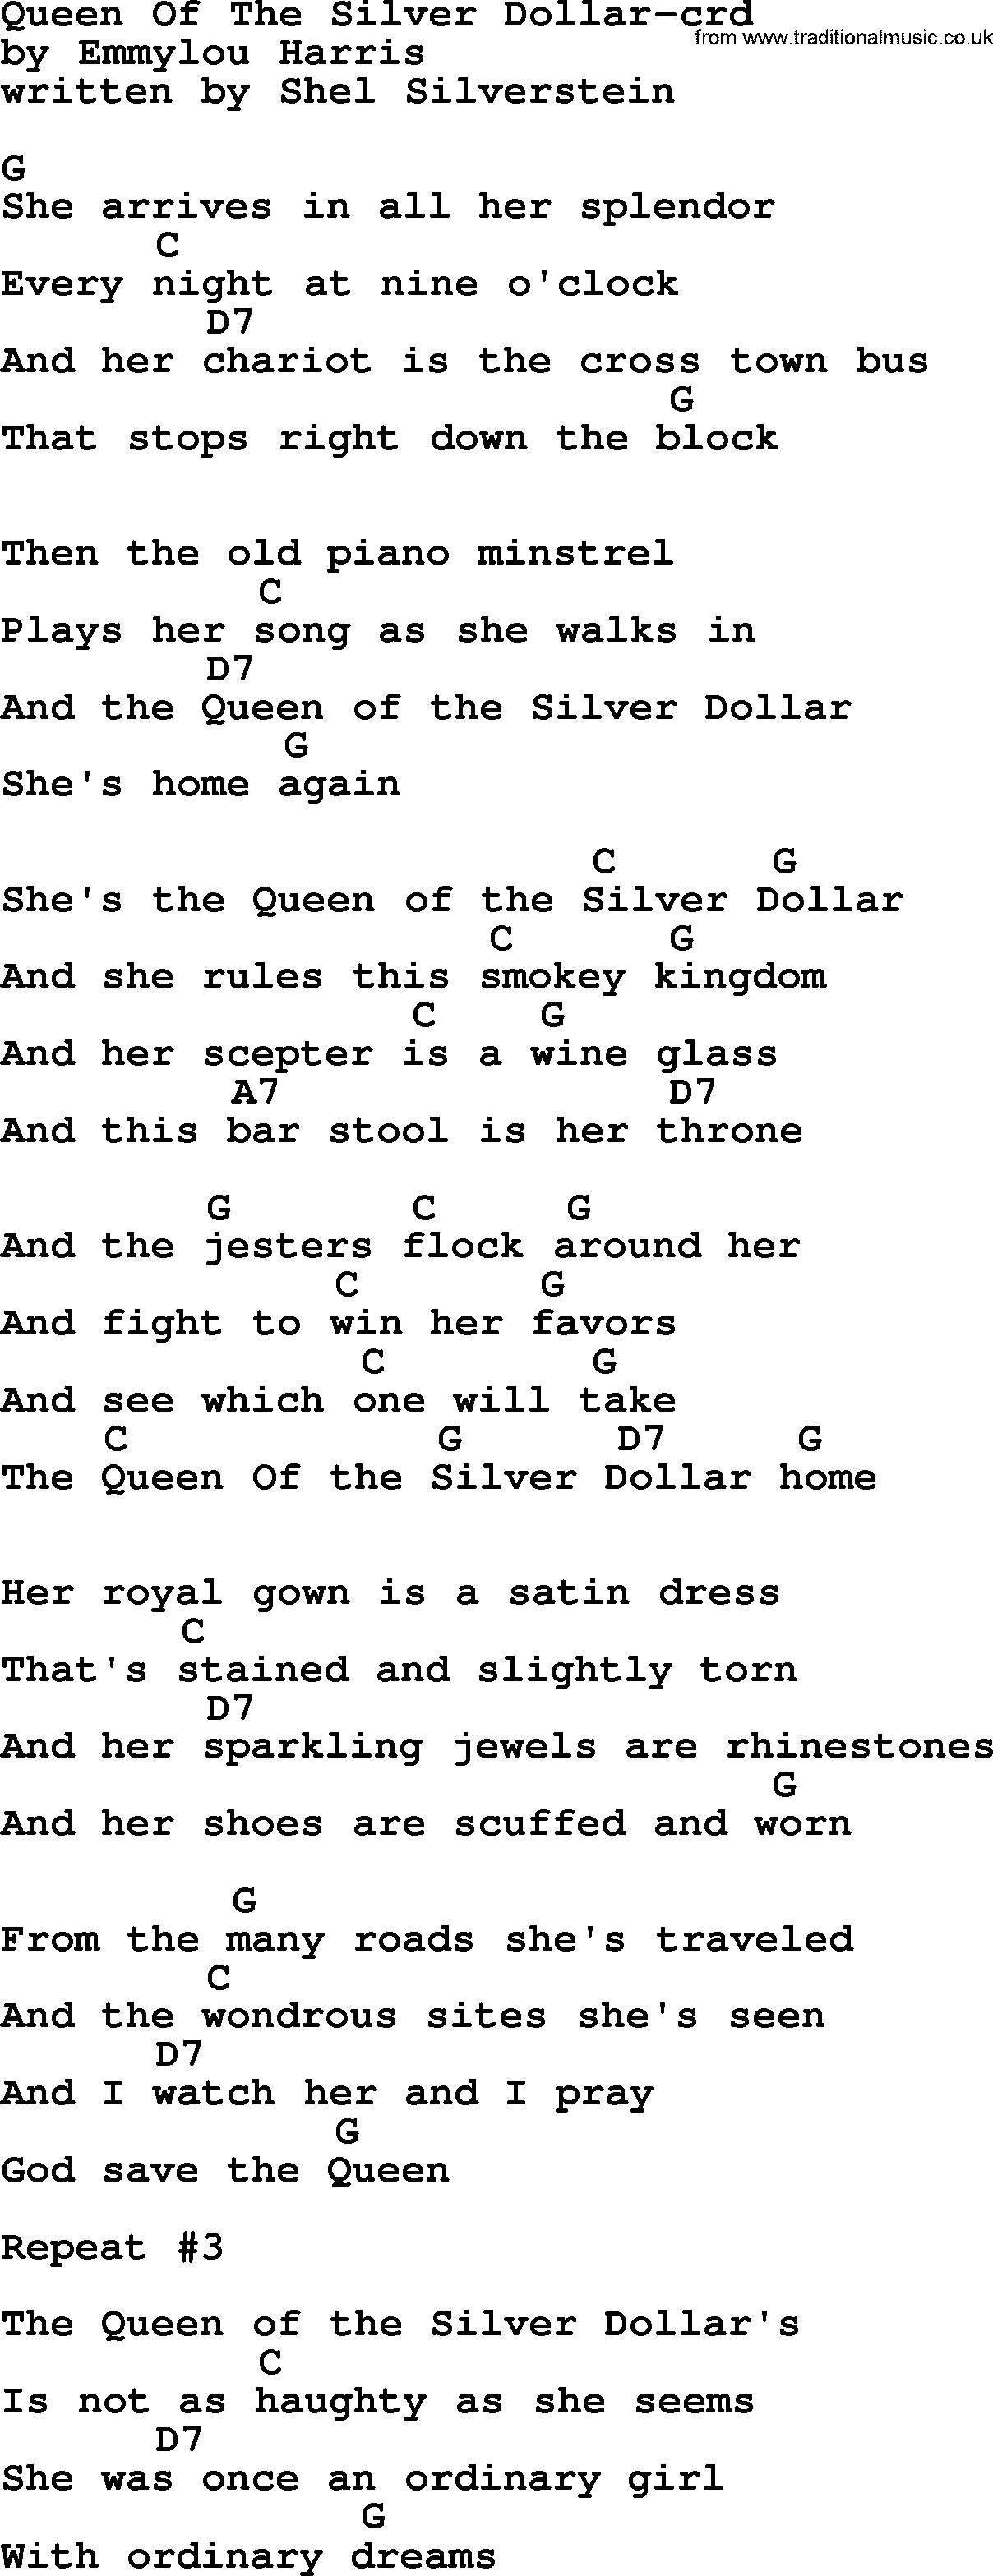 Marty robbins song theyre hanging me tonight lyrics and chords emmylou harris song queen of the silver dollar lyrics and chords hexwebz Choice Image